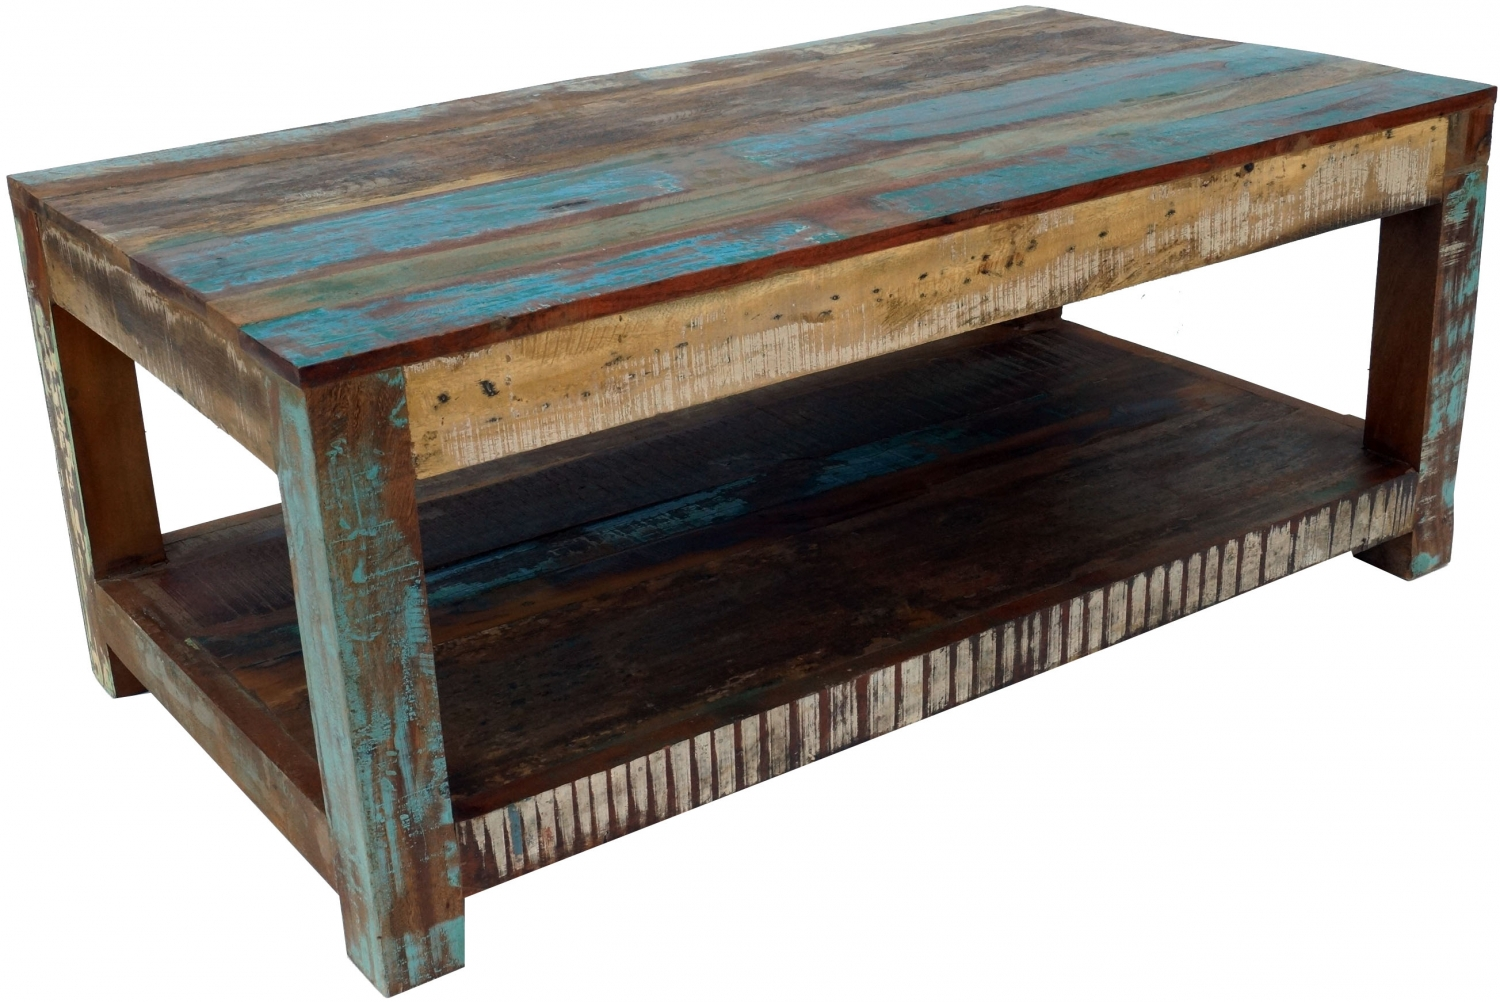 - Vintage Coffee Table, Coffee Table Made Of Recycled Wood - Model 3